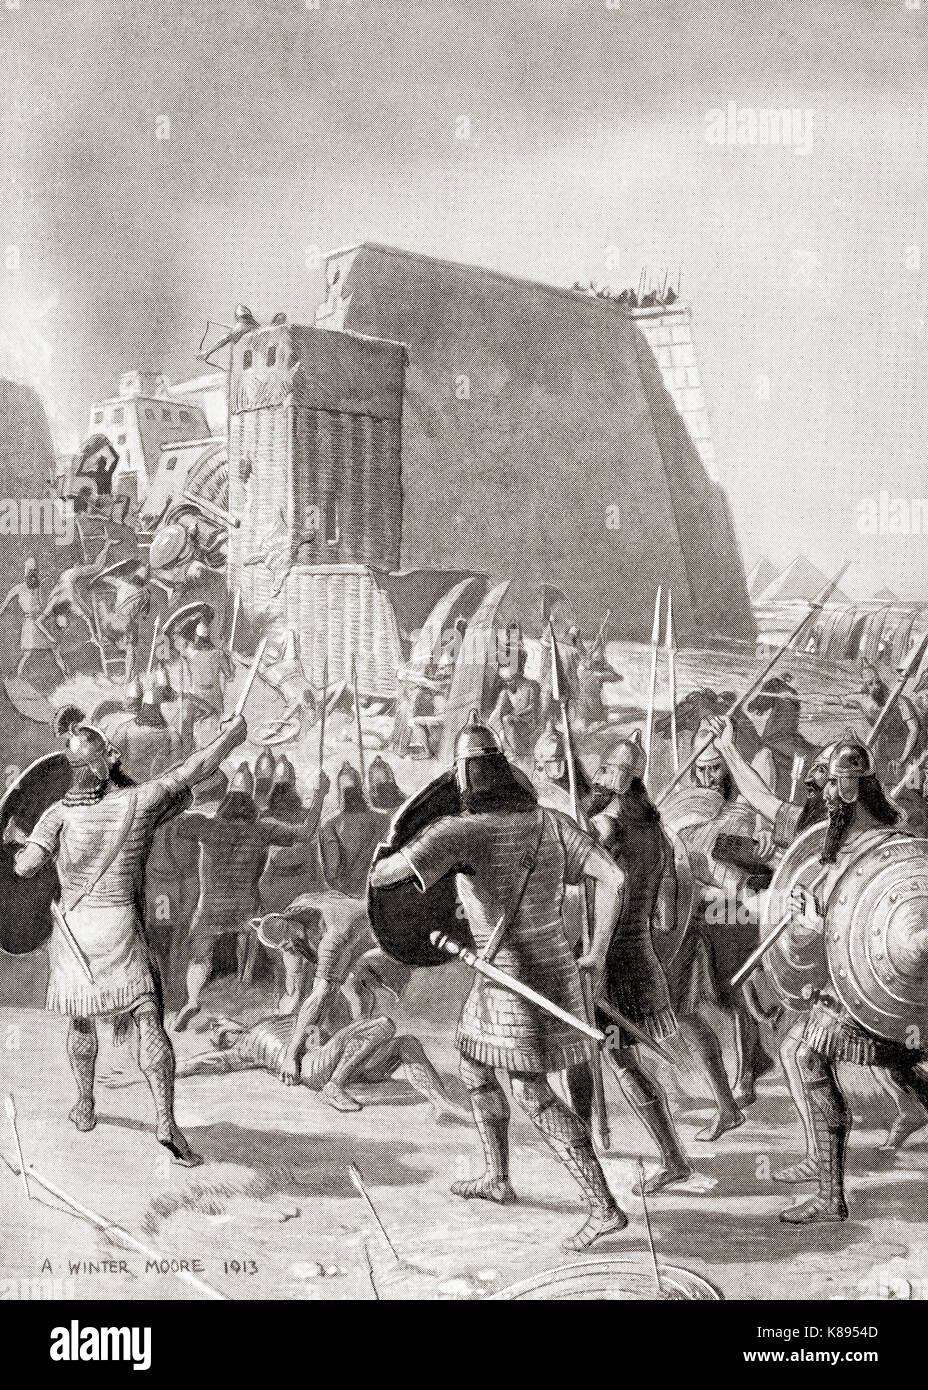 The capture of Memphis, Egypt by the Assyrian king Esarhaddon, 671 BC. Esarhaddon, king of the Neo-Assyrian Empire - Stock Image